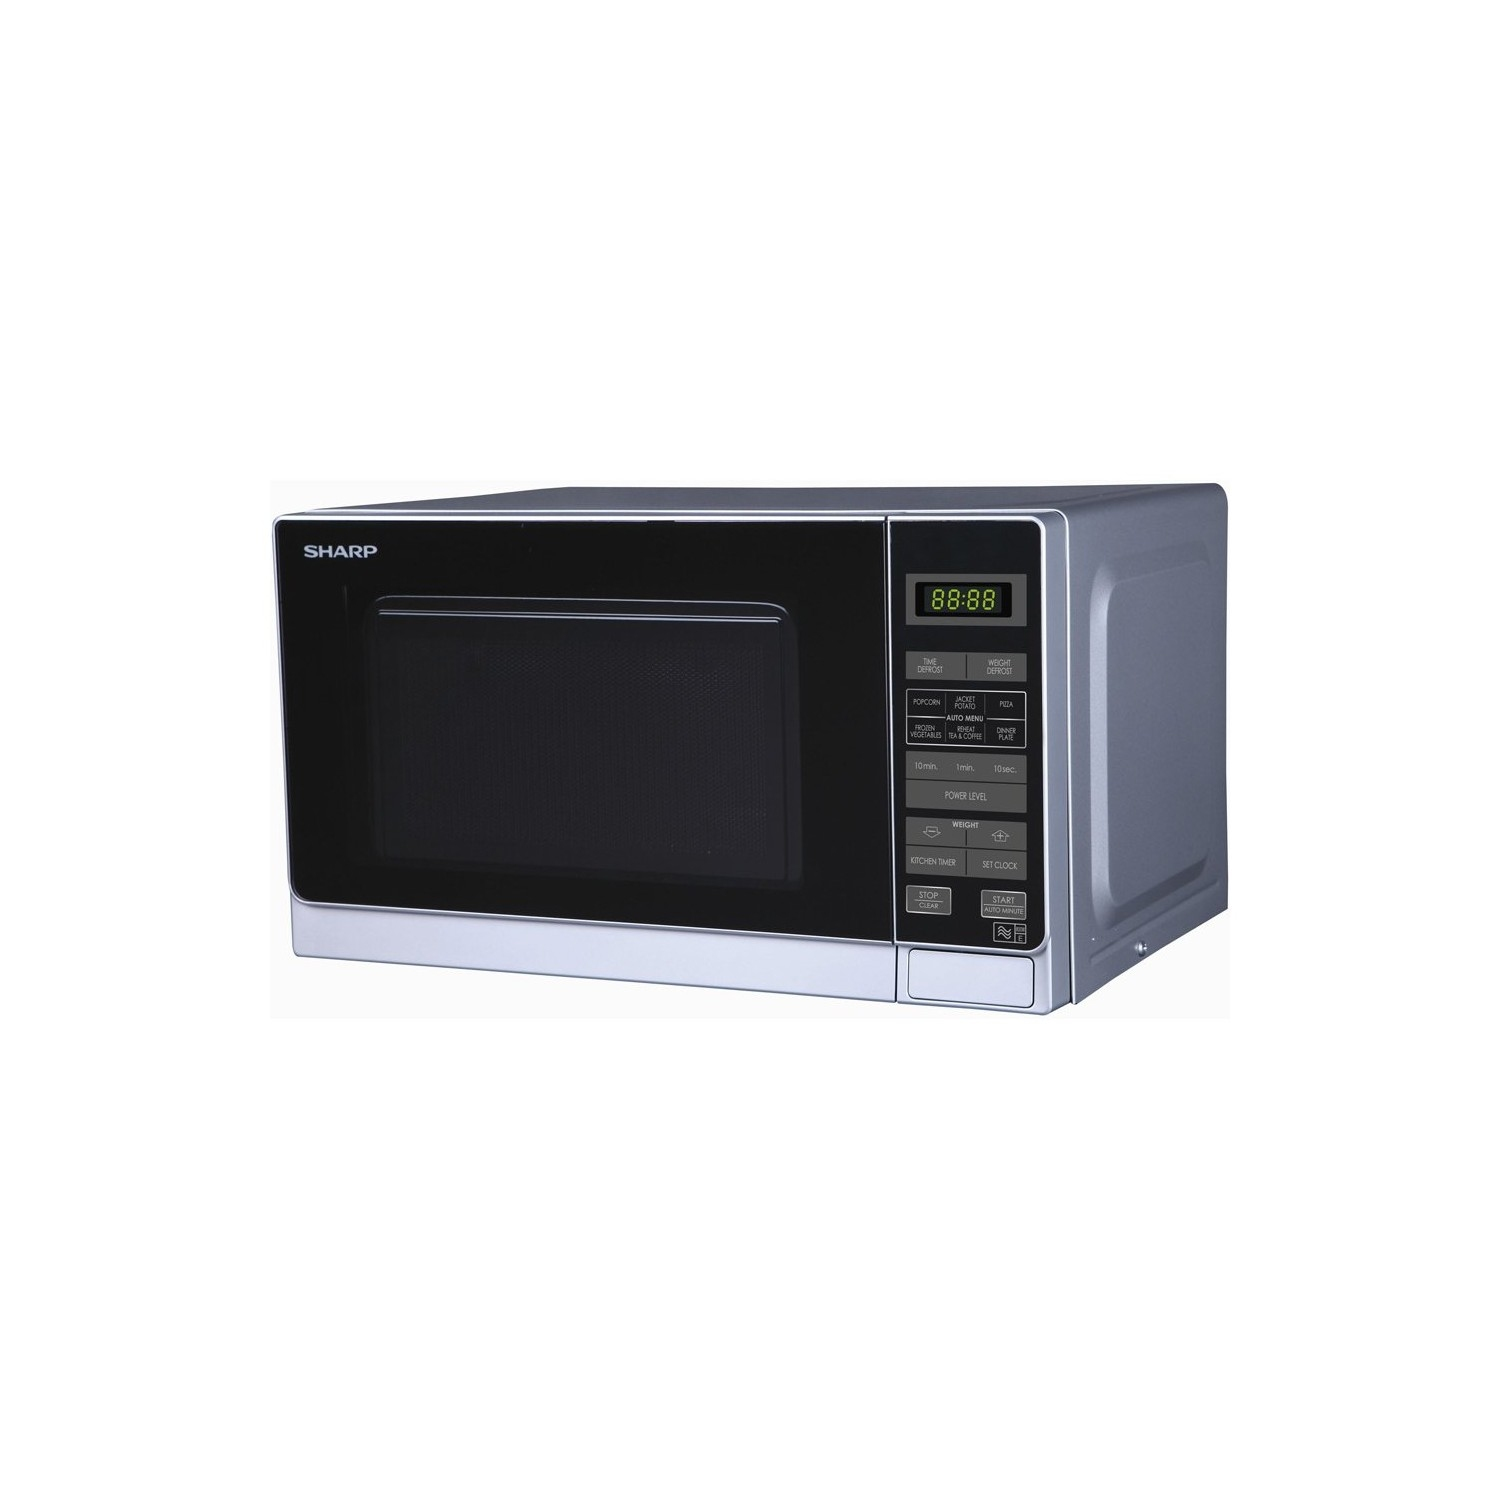 Sharp 20 Litre Microwave - Silver - 0